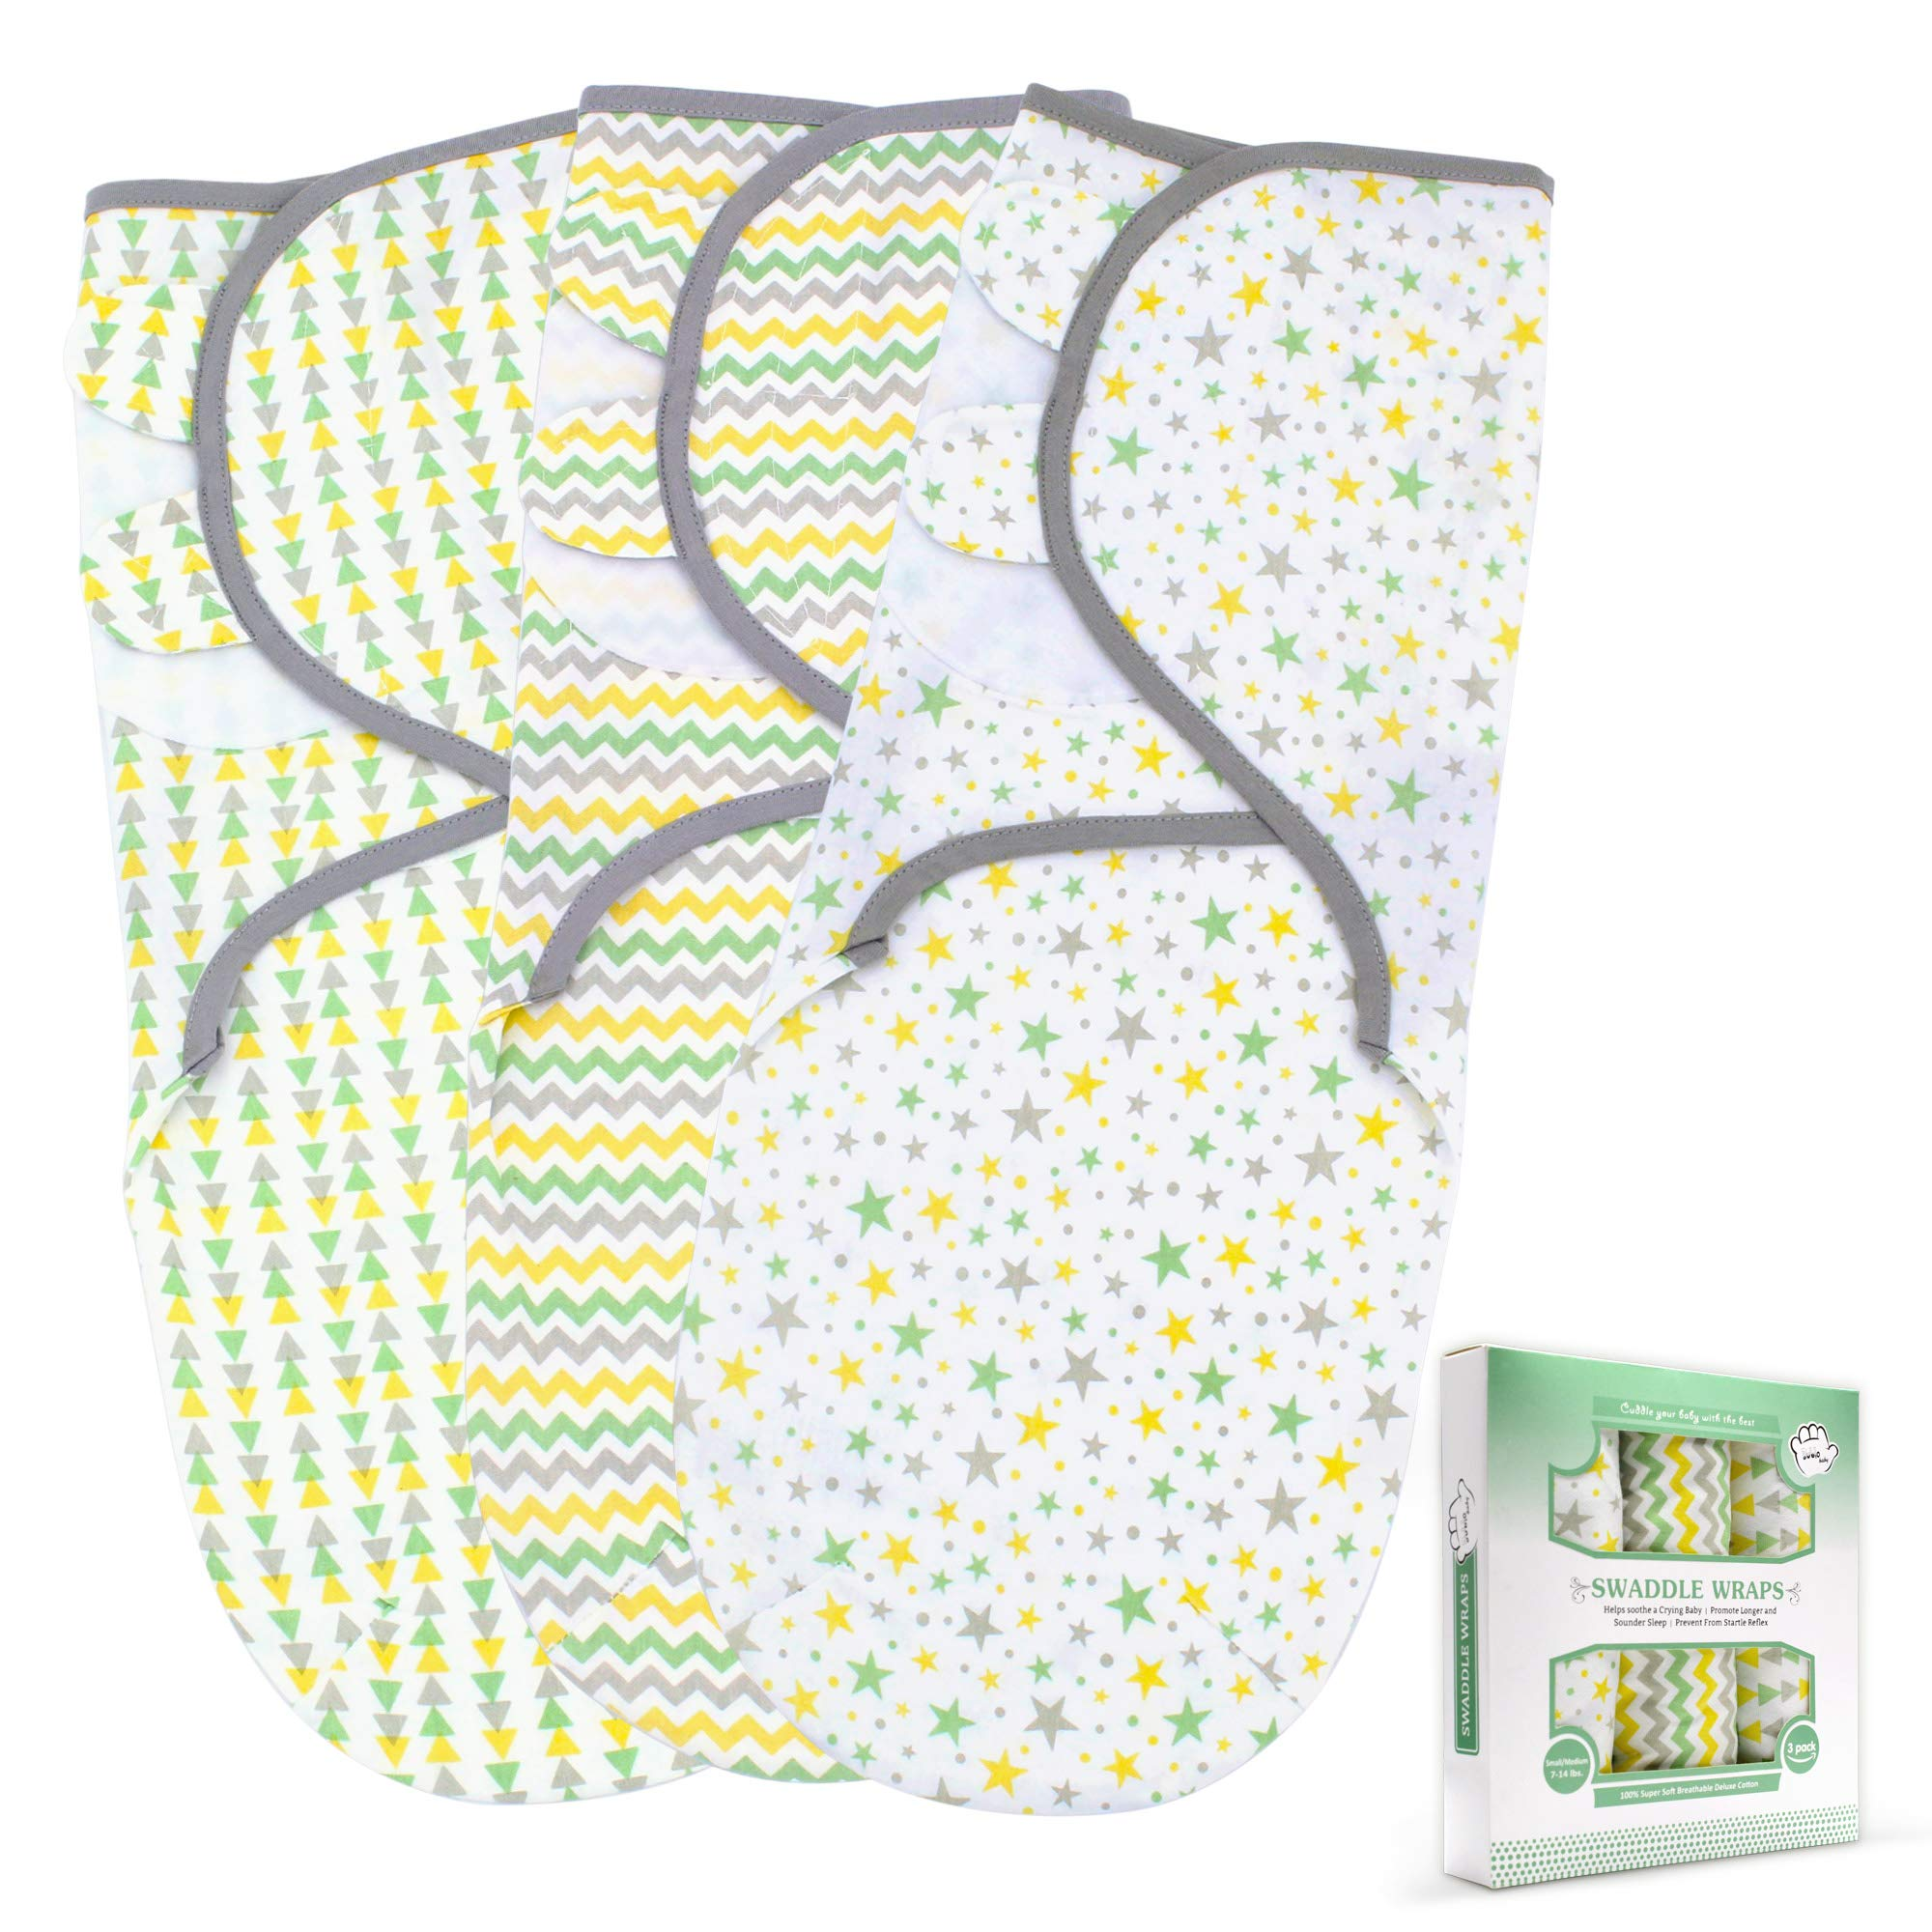 Baby Swaddle Blanket for Newborn Boy and Girl | 3 Set of Adjustable Infant Wrap with Fastener Straps | Breathable Soft Cotton | 0-3 Month product image